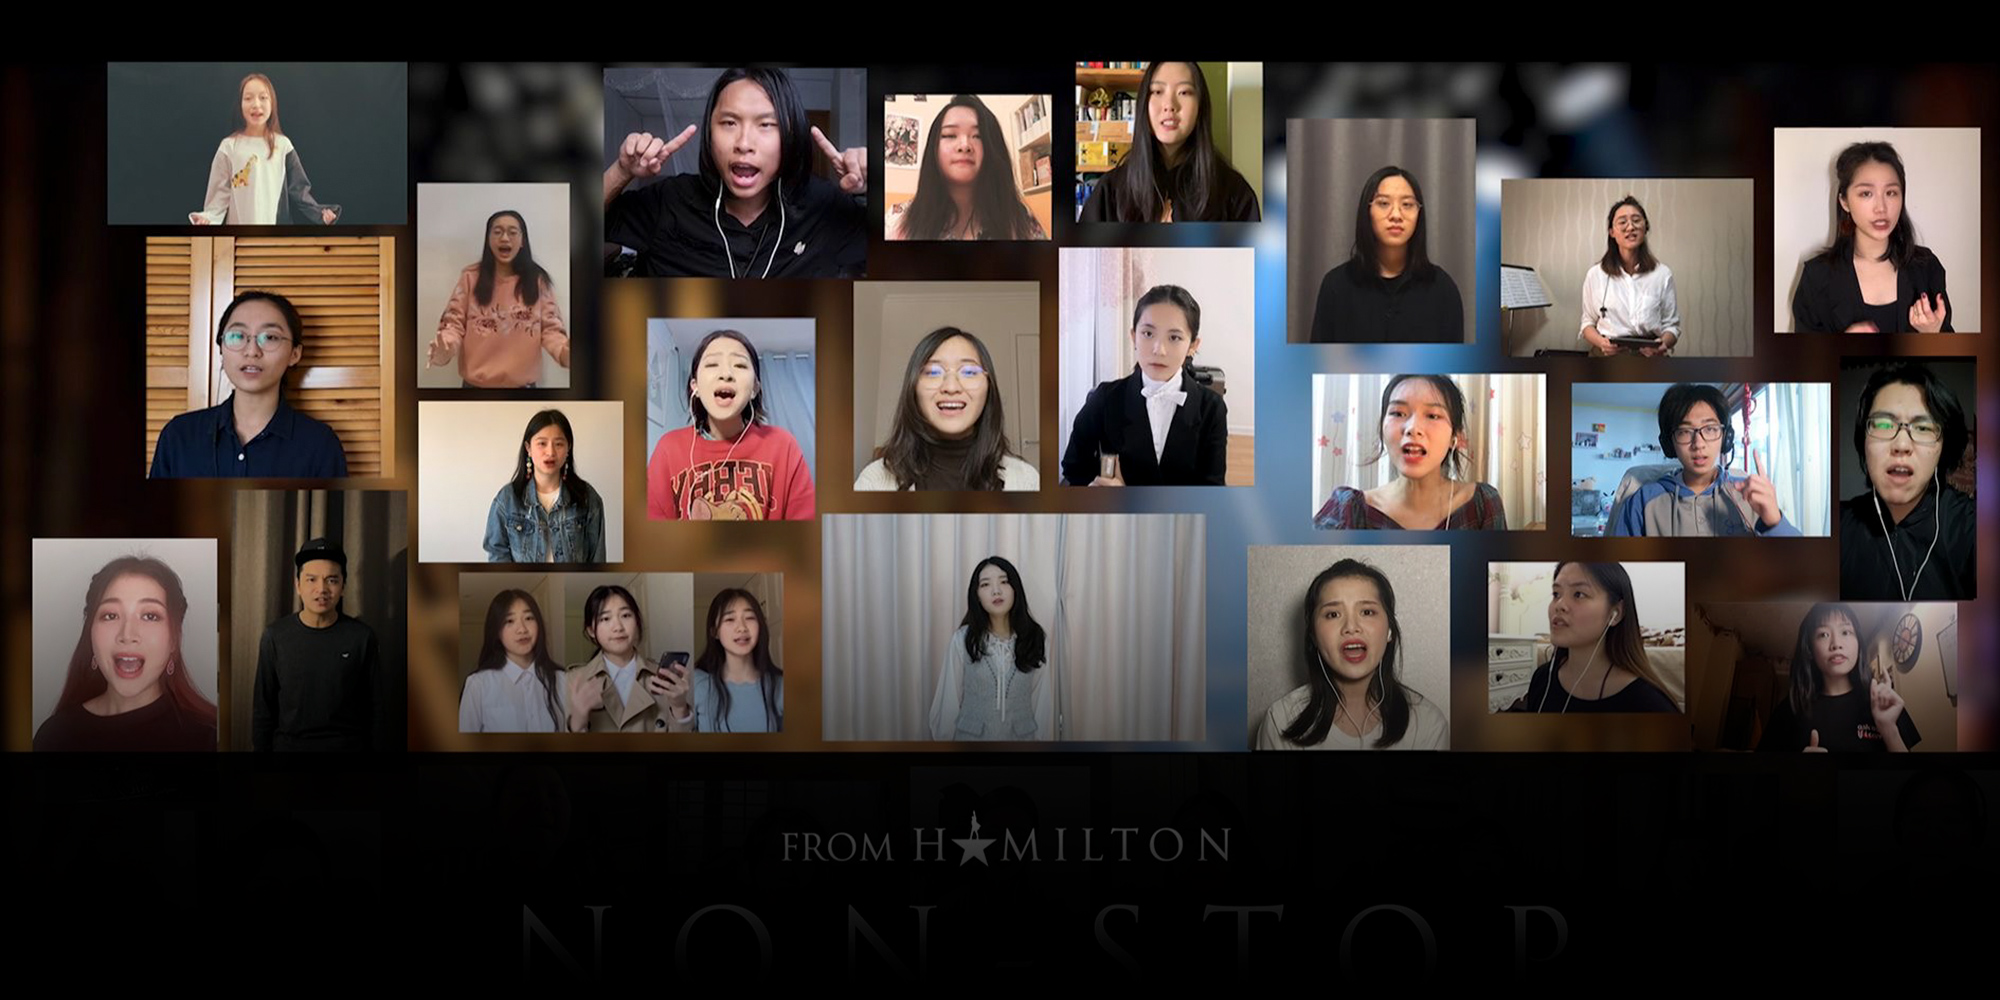 A collage of cam photos of Chinese people singing